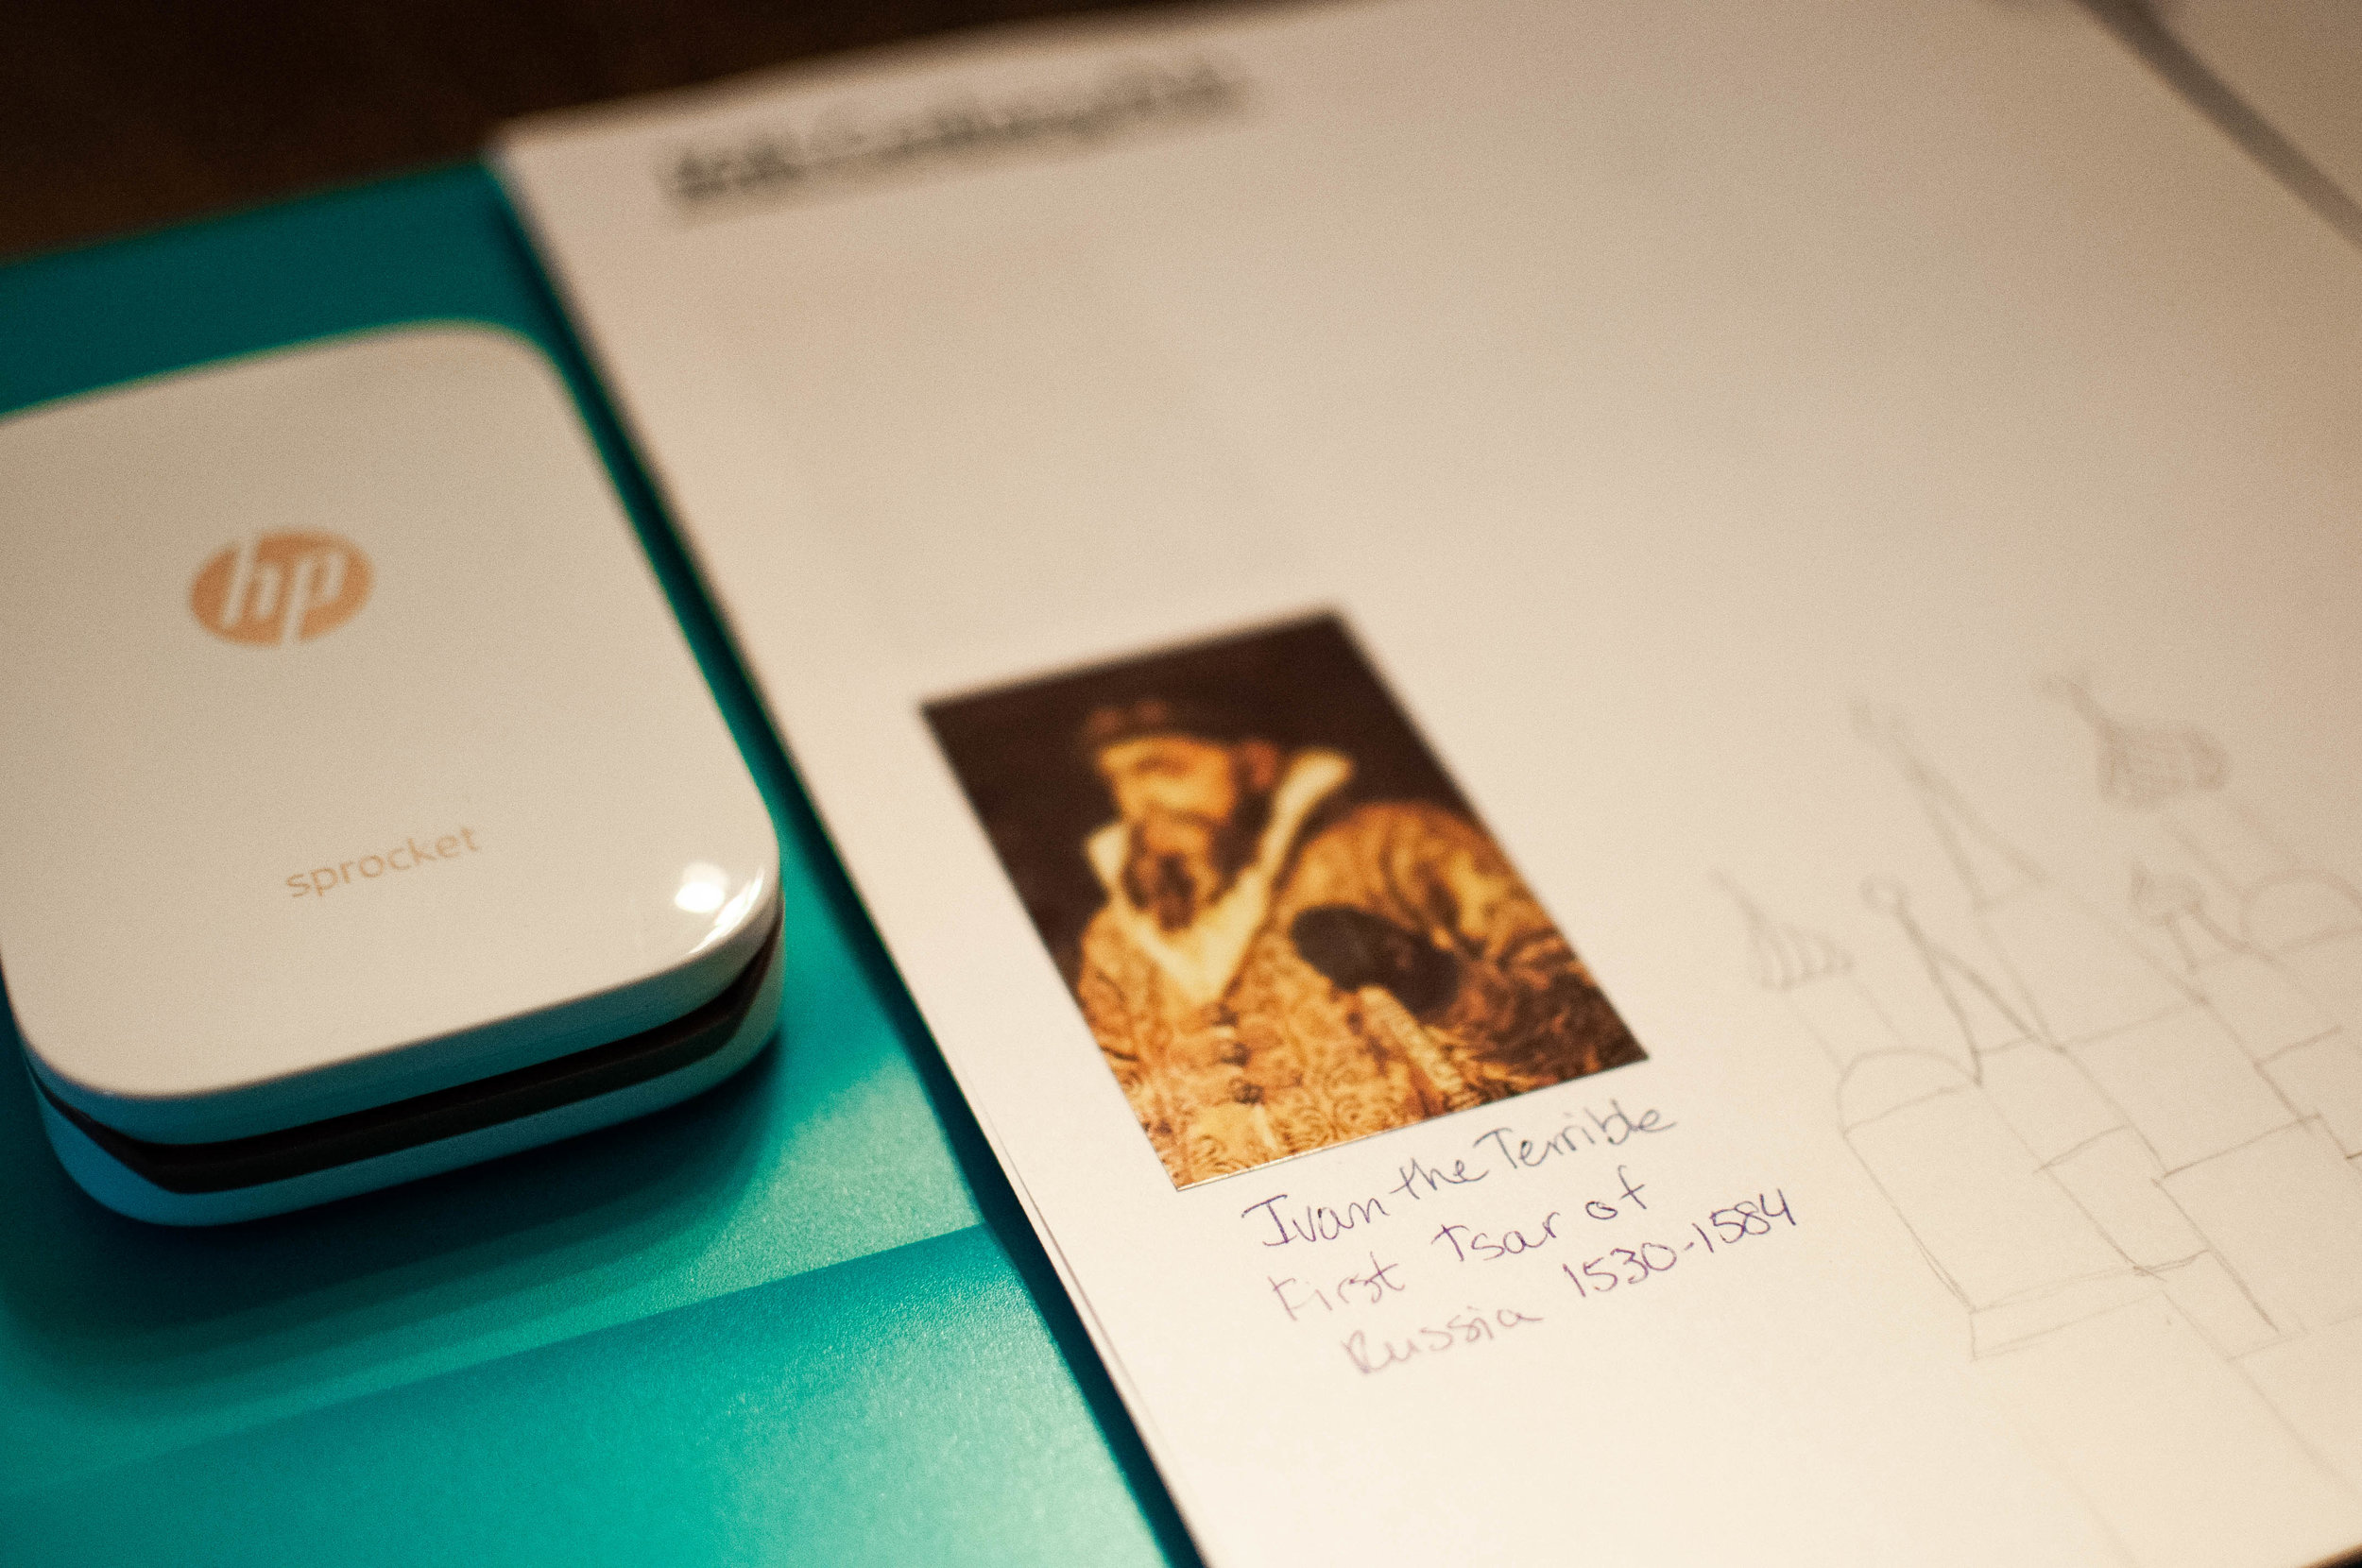 HP Sprocket for homeschooling. We print little photos and stick them in our book of centuries!